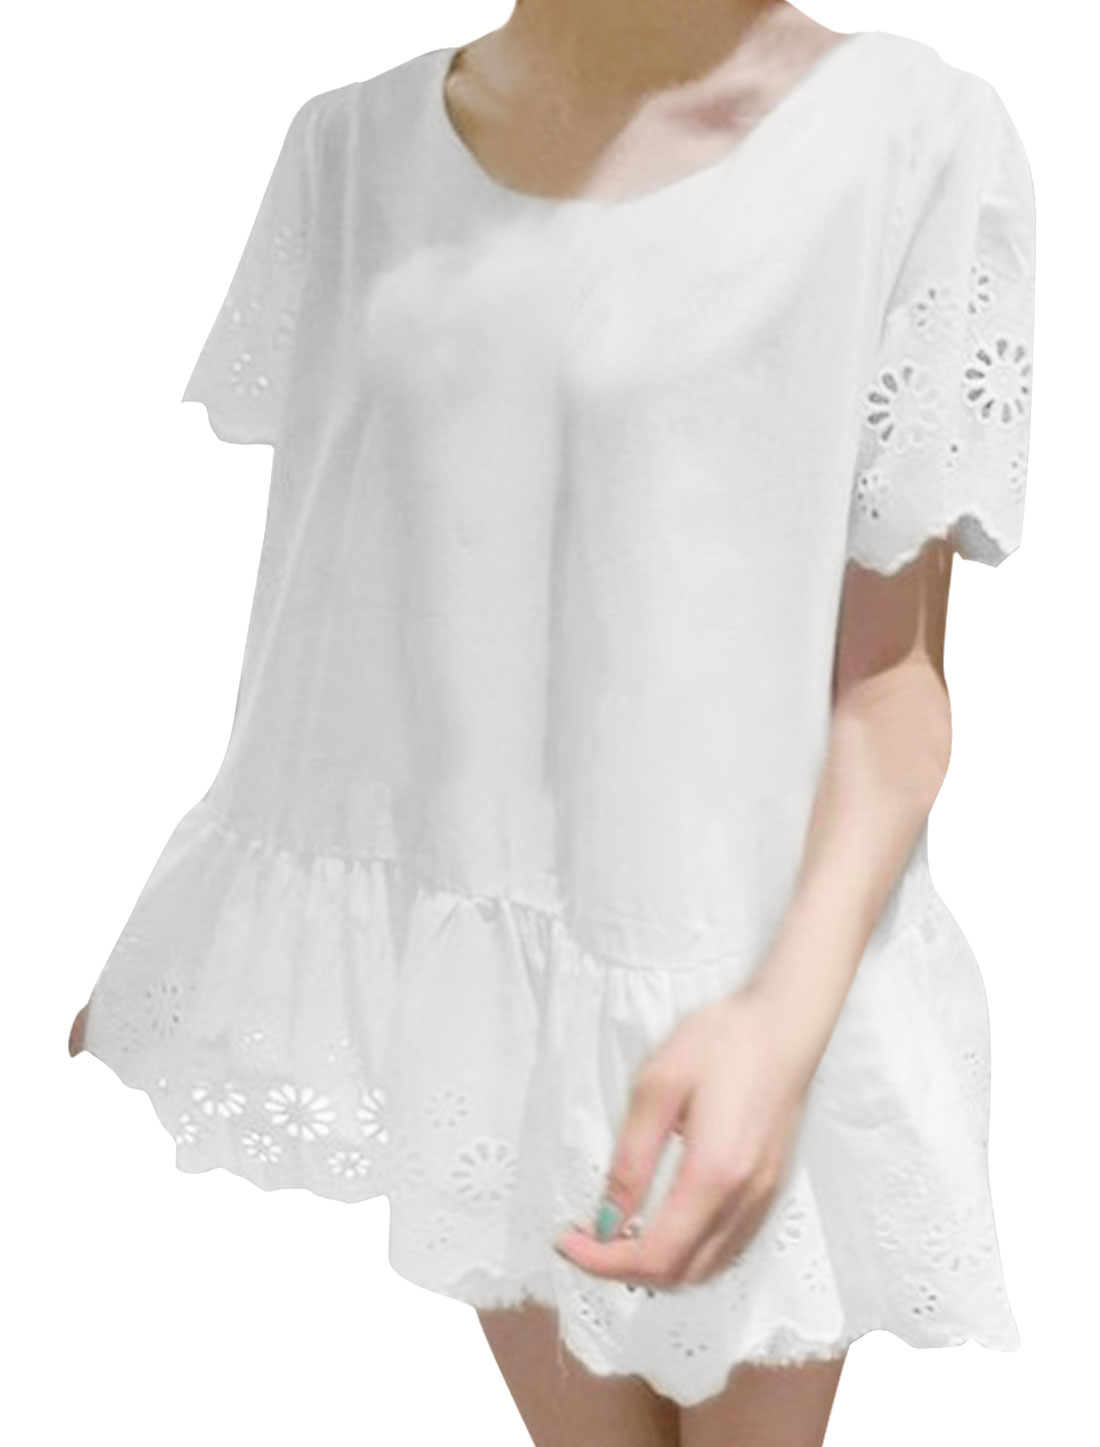 Lady White Round Neck Short Sleeve Flouncing Hem Pullover Top S